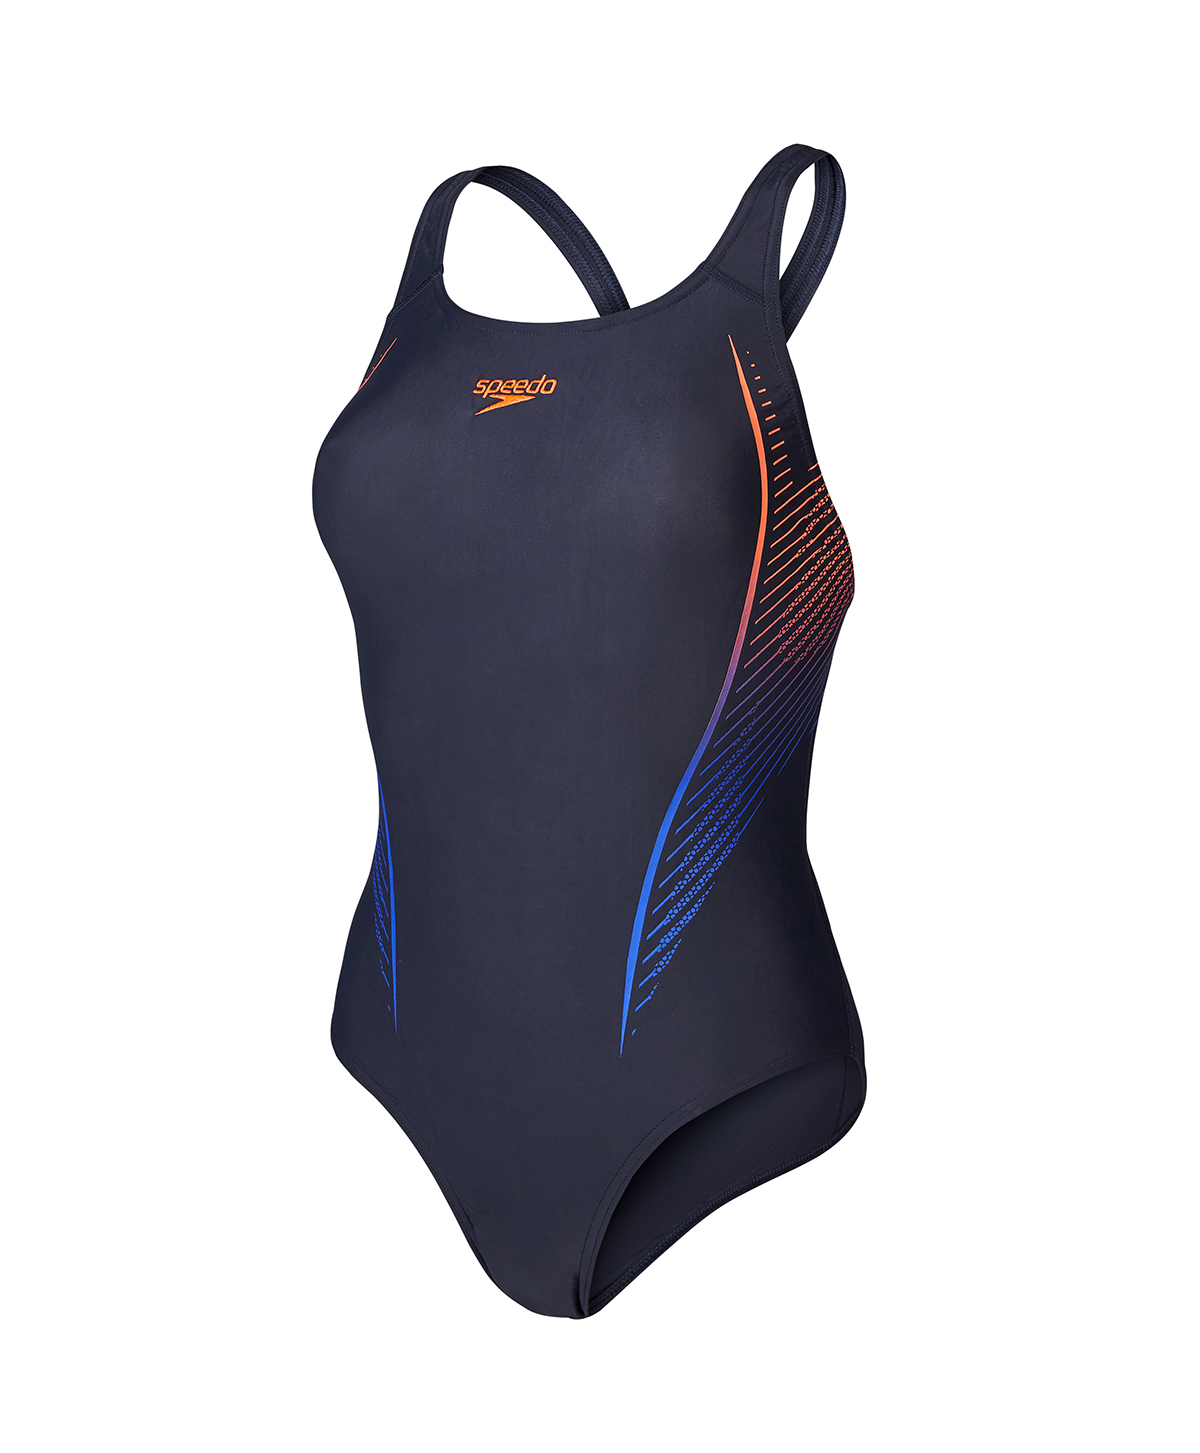 Speedo Ladies Placement Powerback- Grey